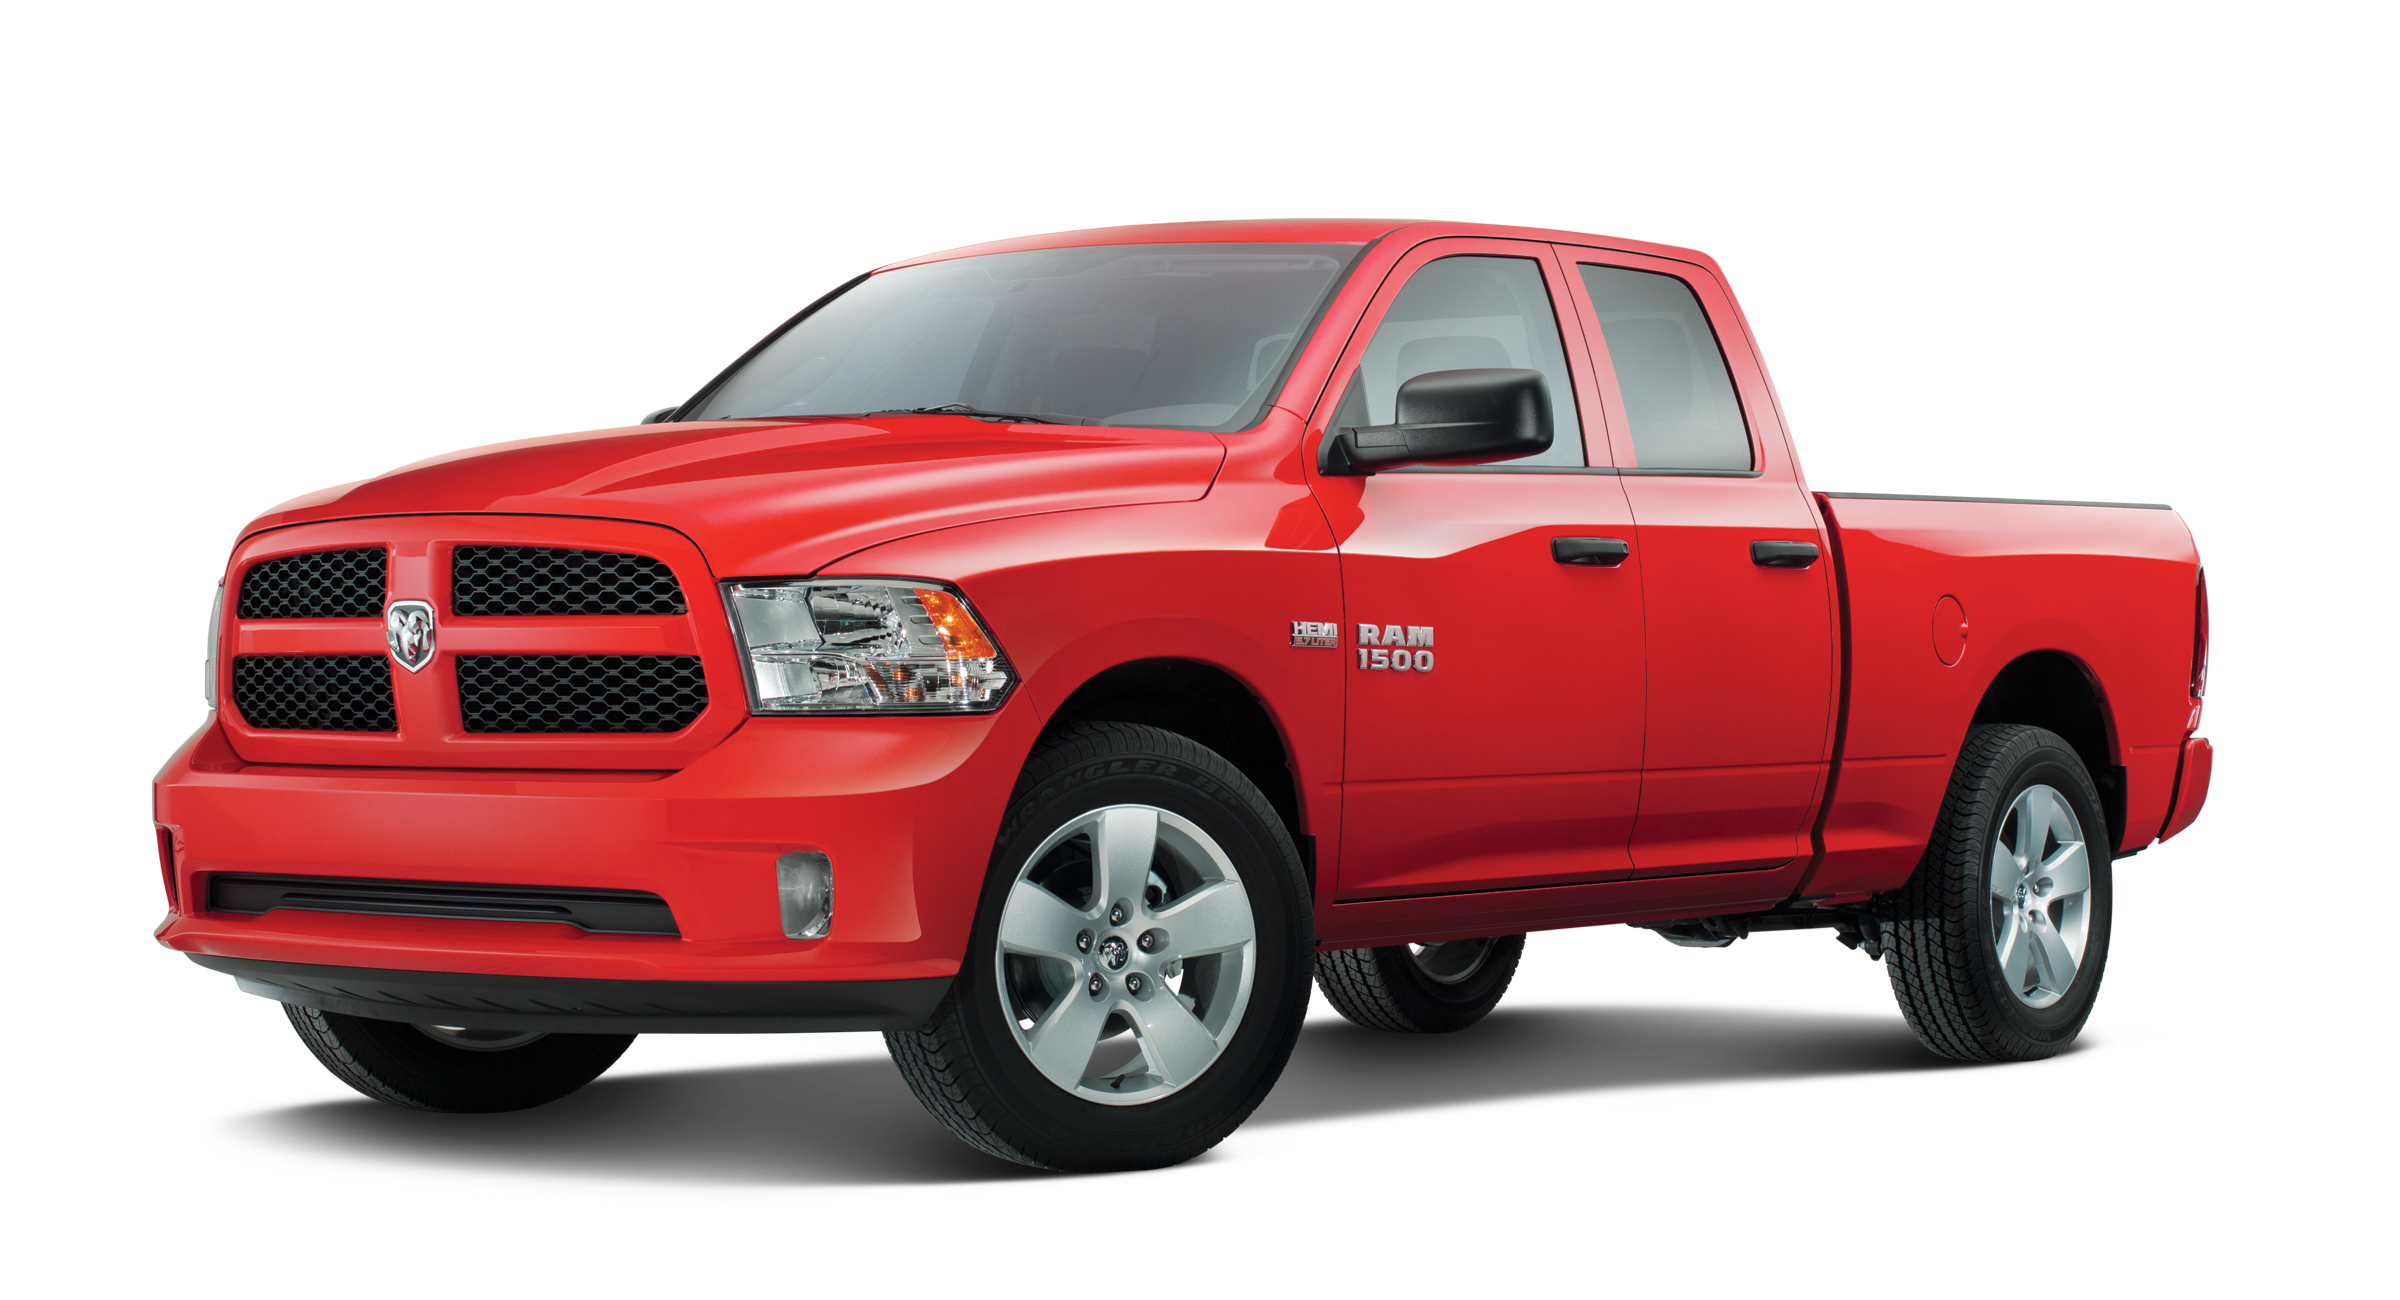 5th Gen Dodge Ram News Of New Car Release And Reviews Gmc Topkick 6500 Mitula Cars Pickup Truck Images Free Download